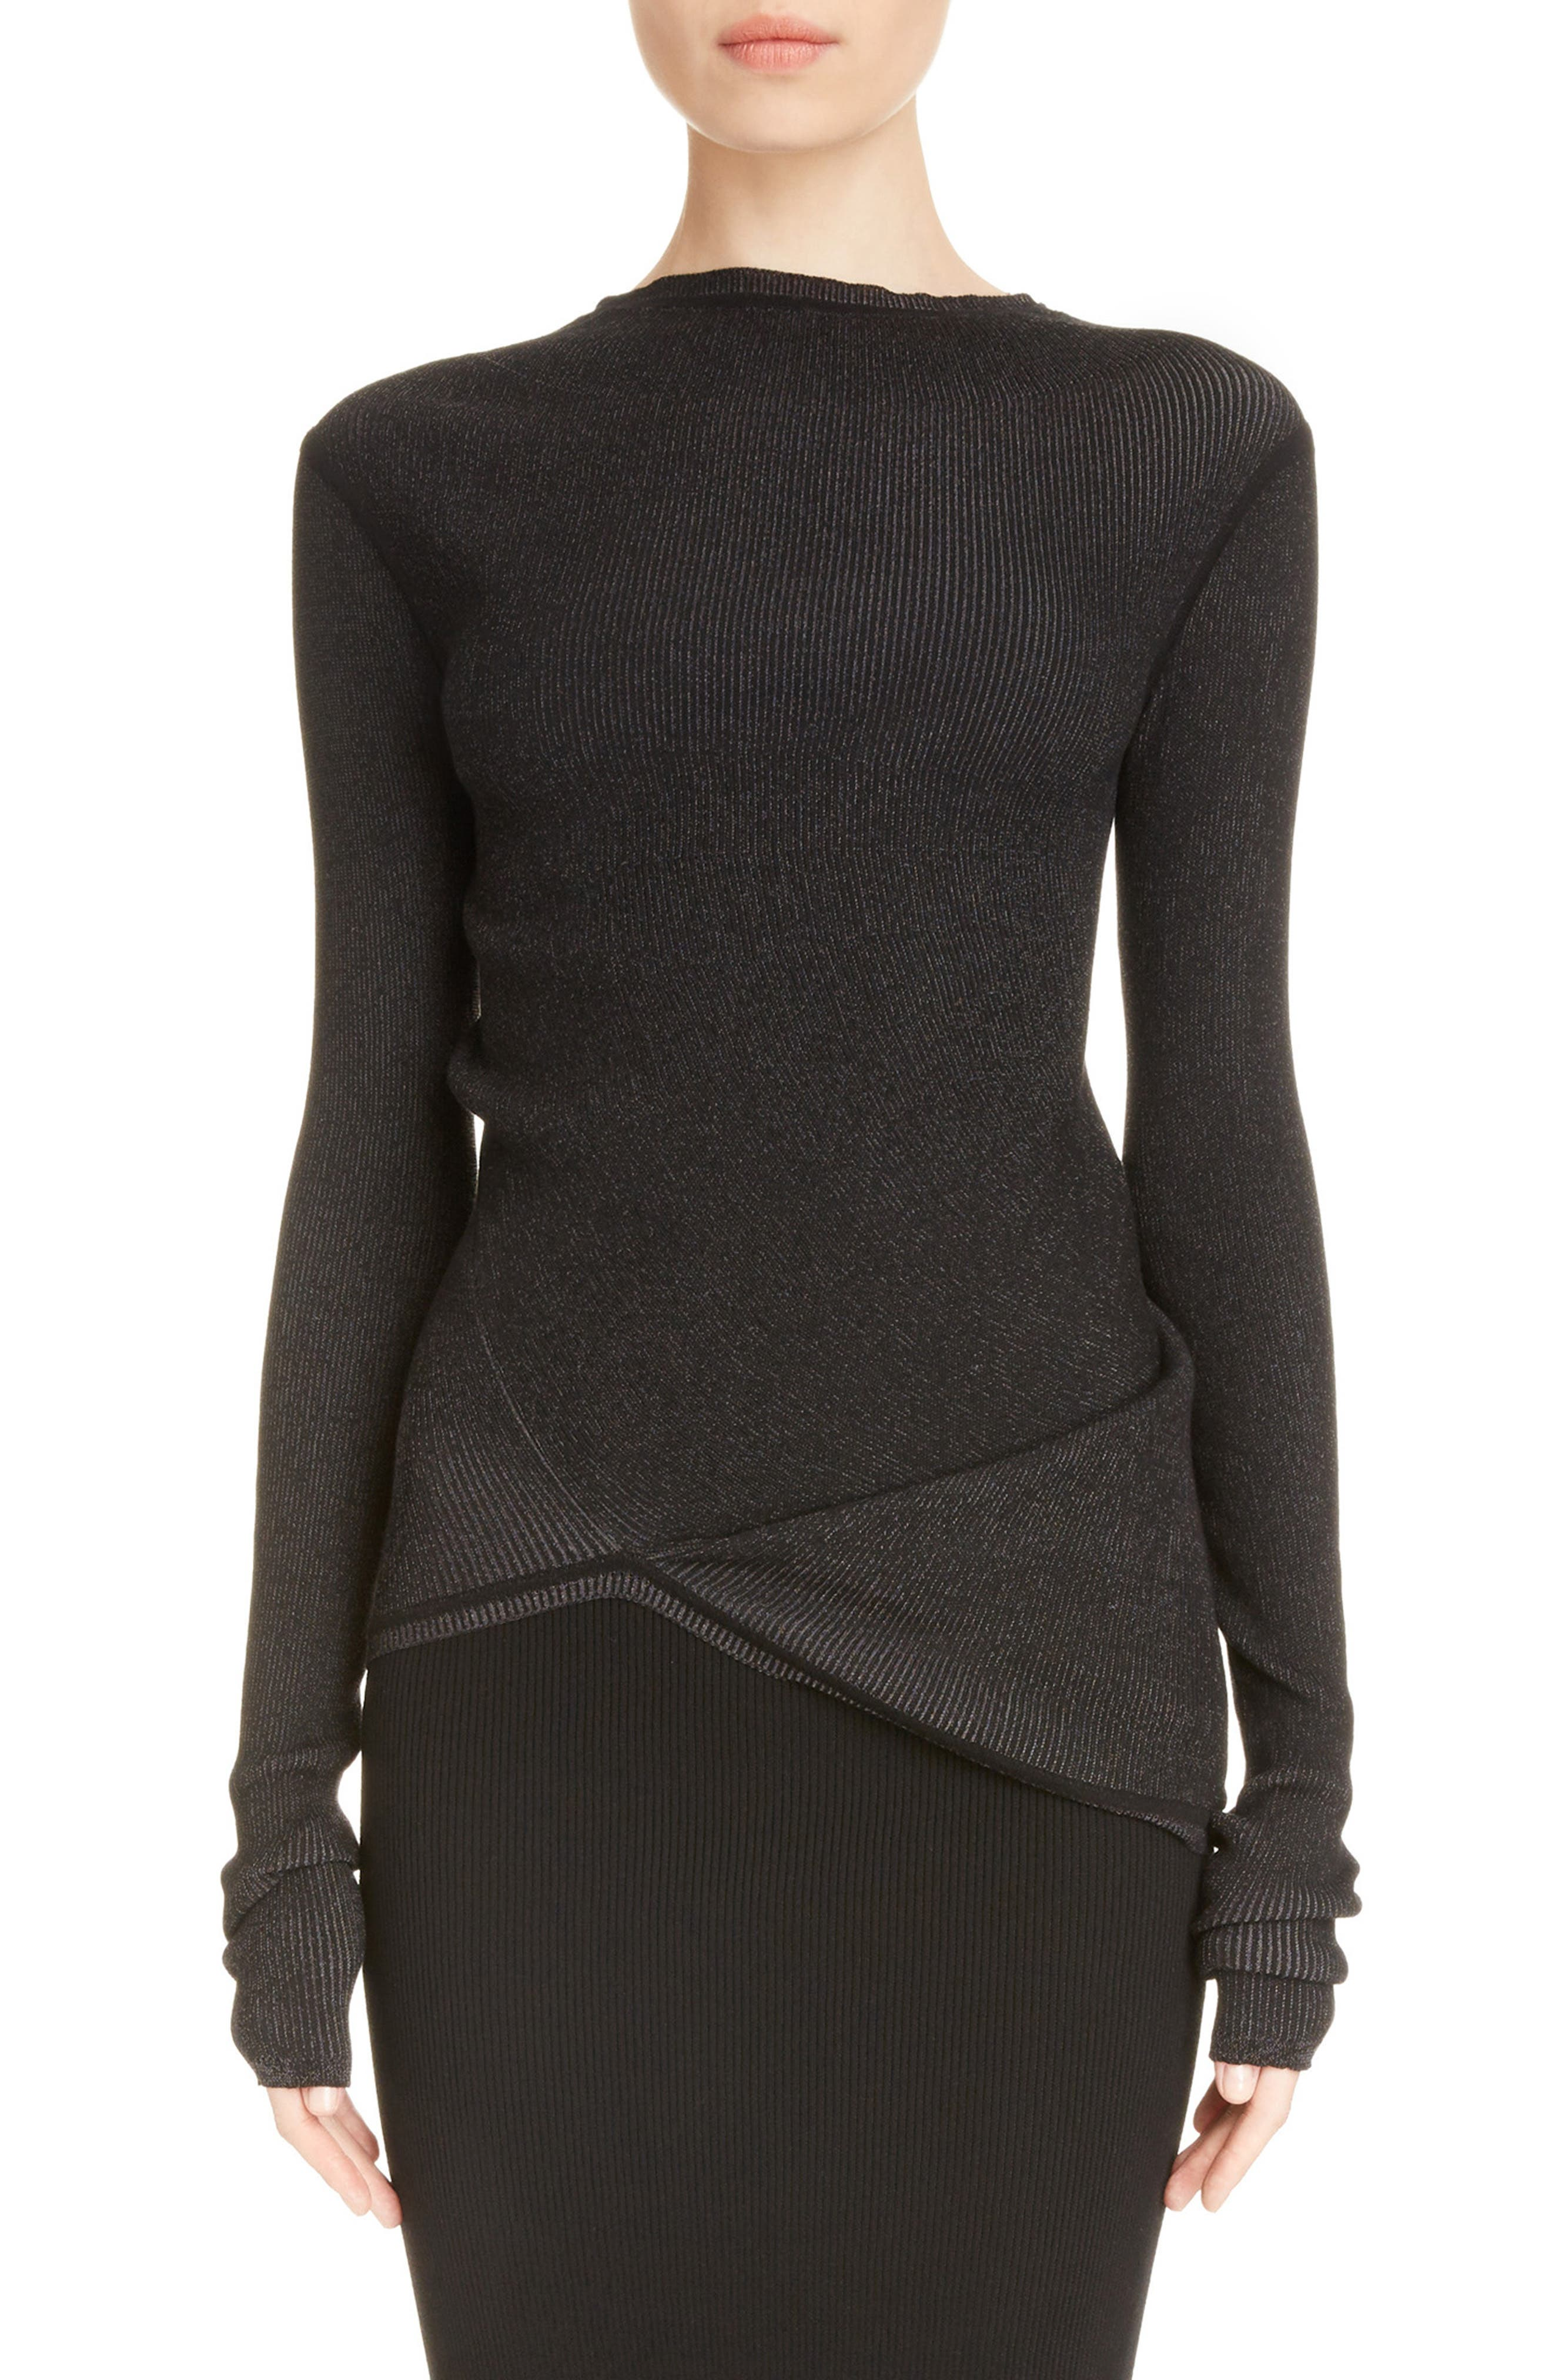 Rick Owens Stretch Knit Top